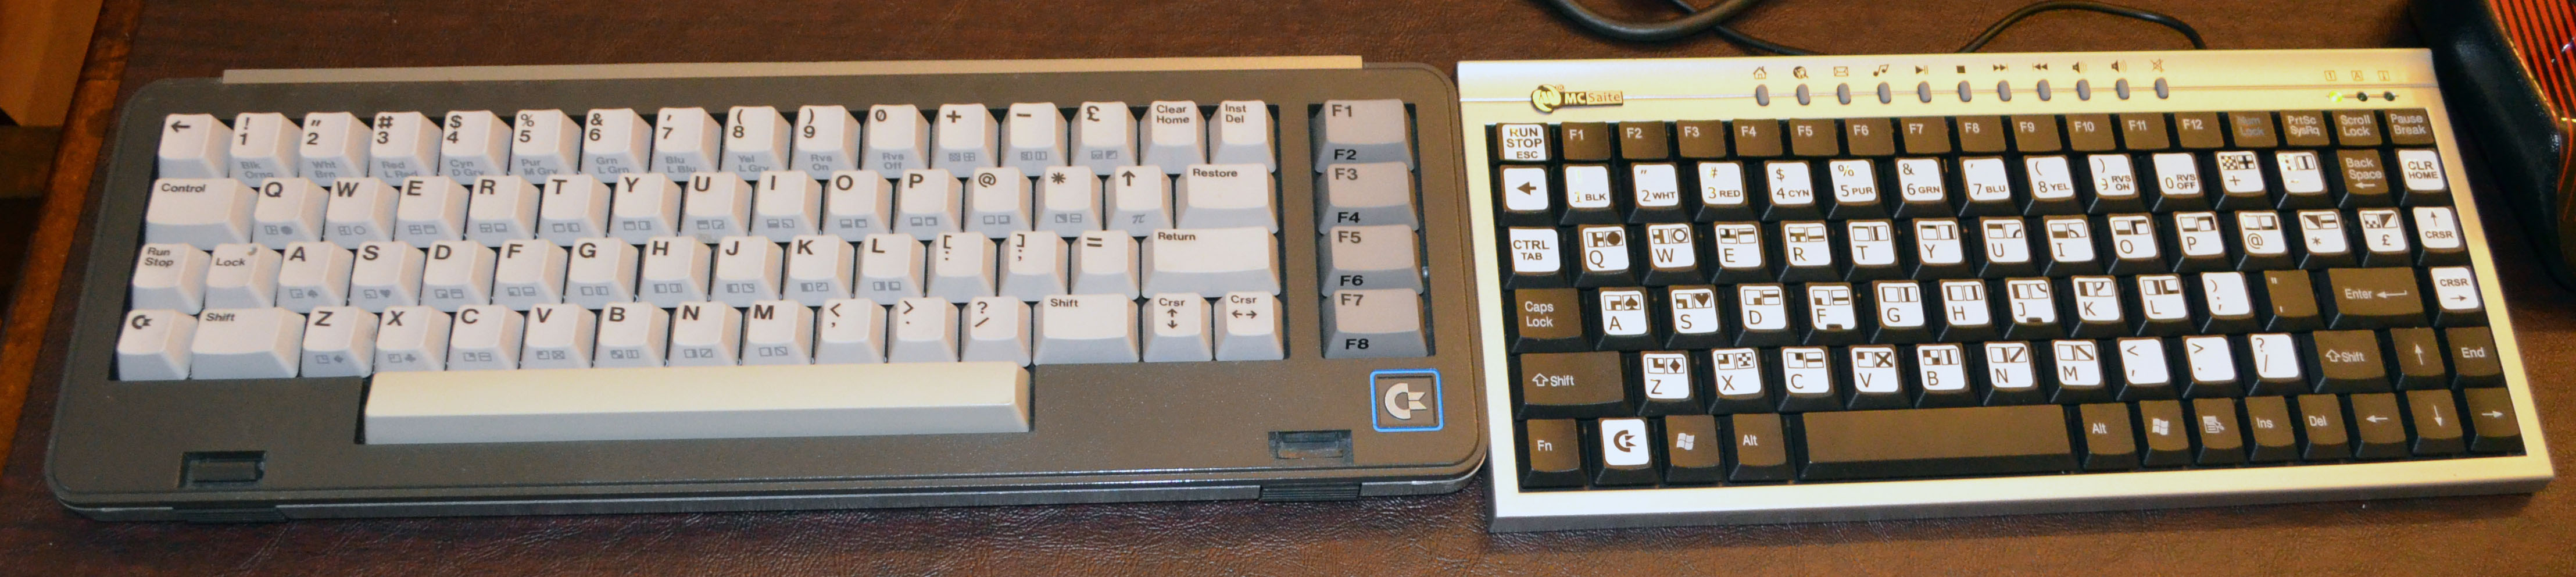 The original SX-64 keyboard (left) and my cheap sticker keyboard (right).